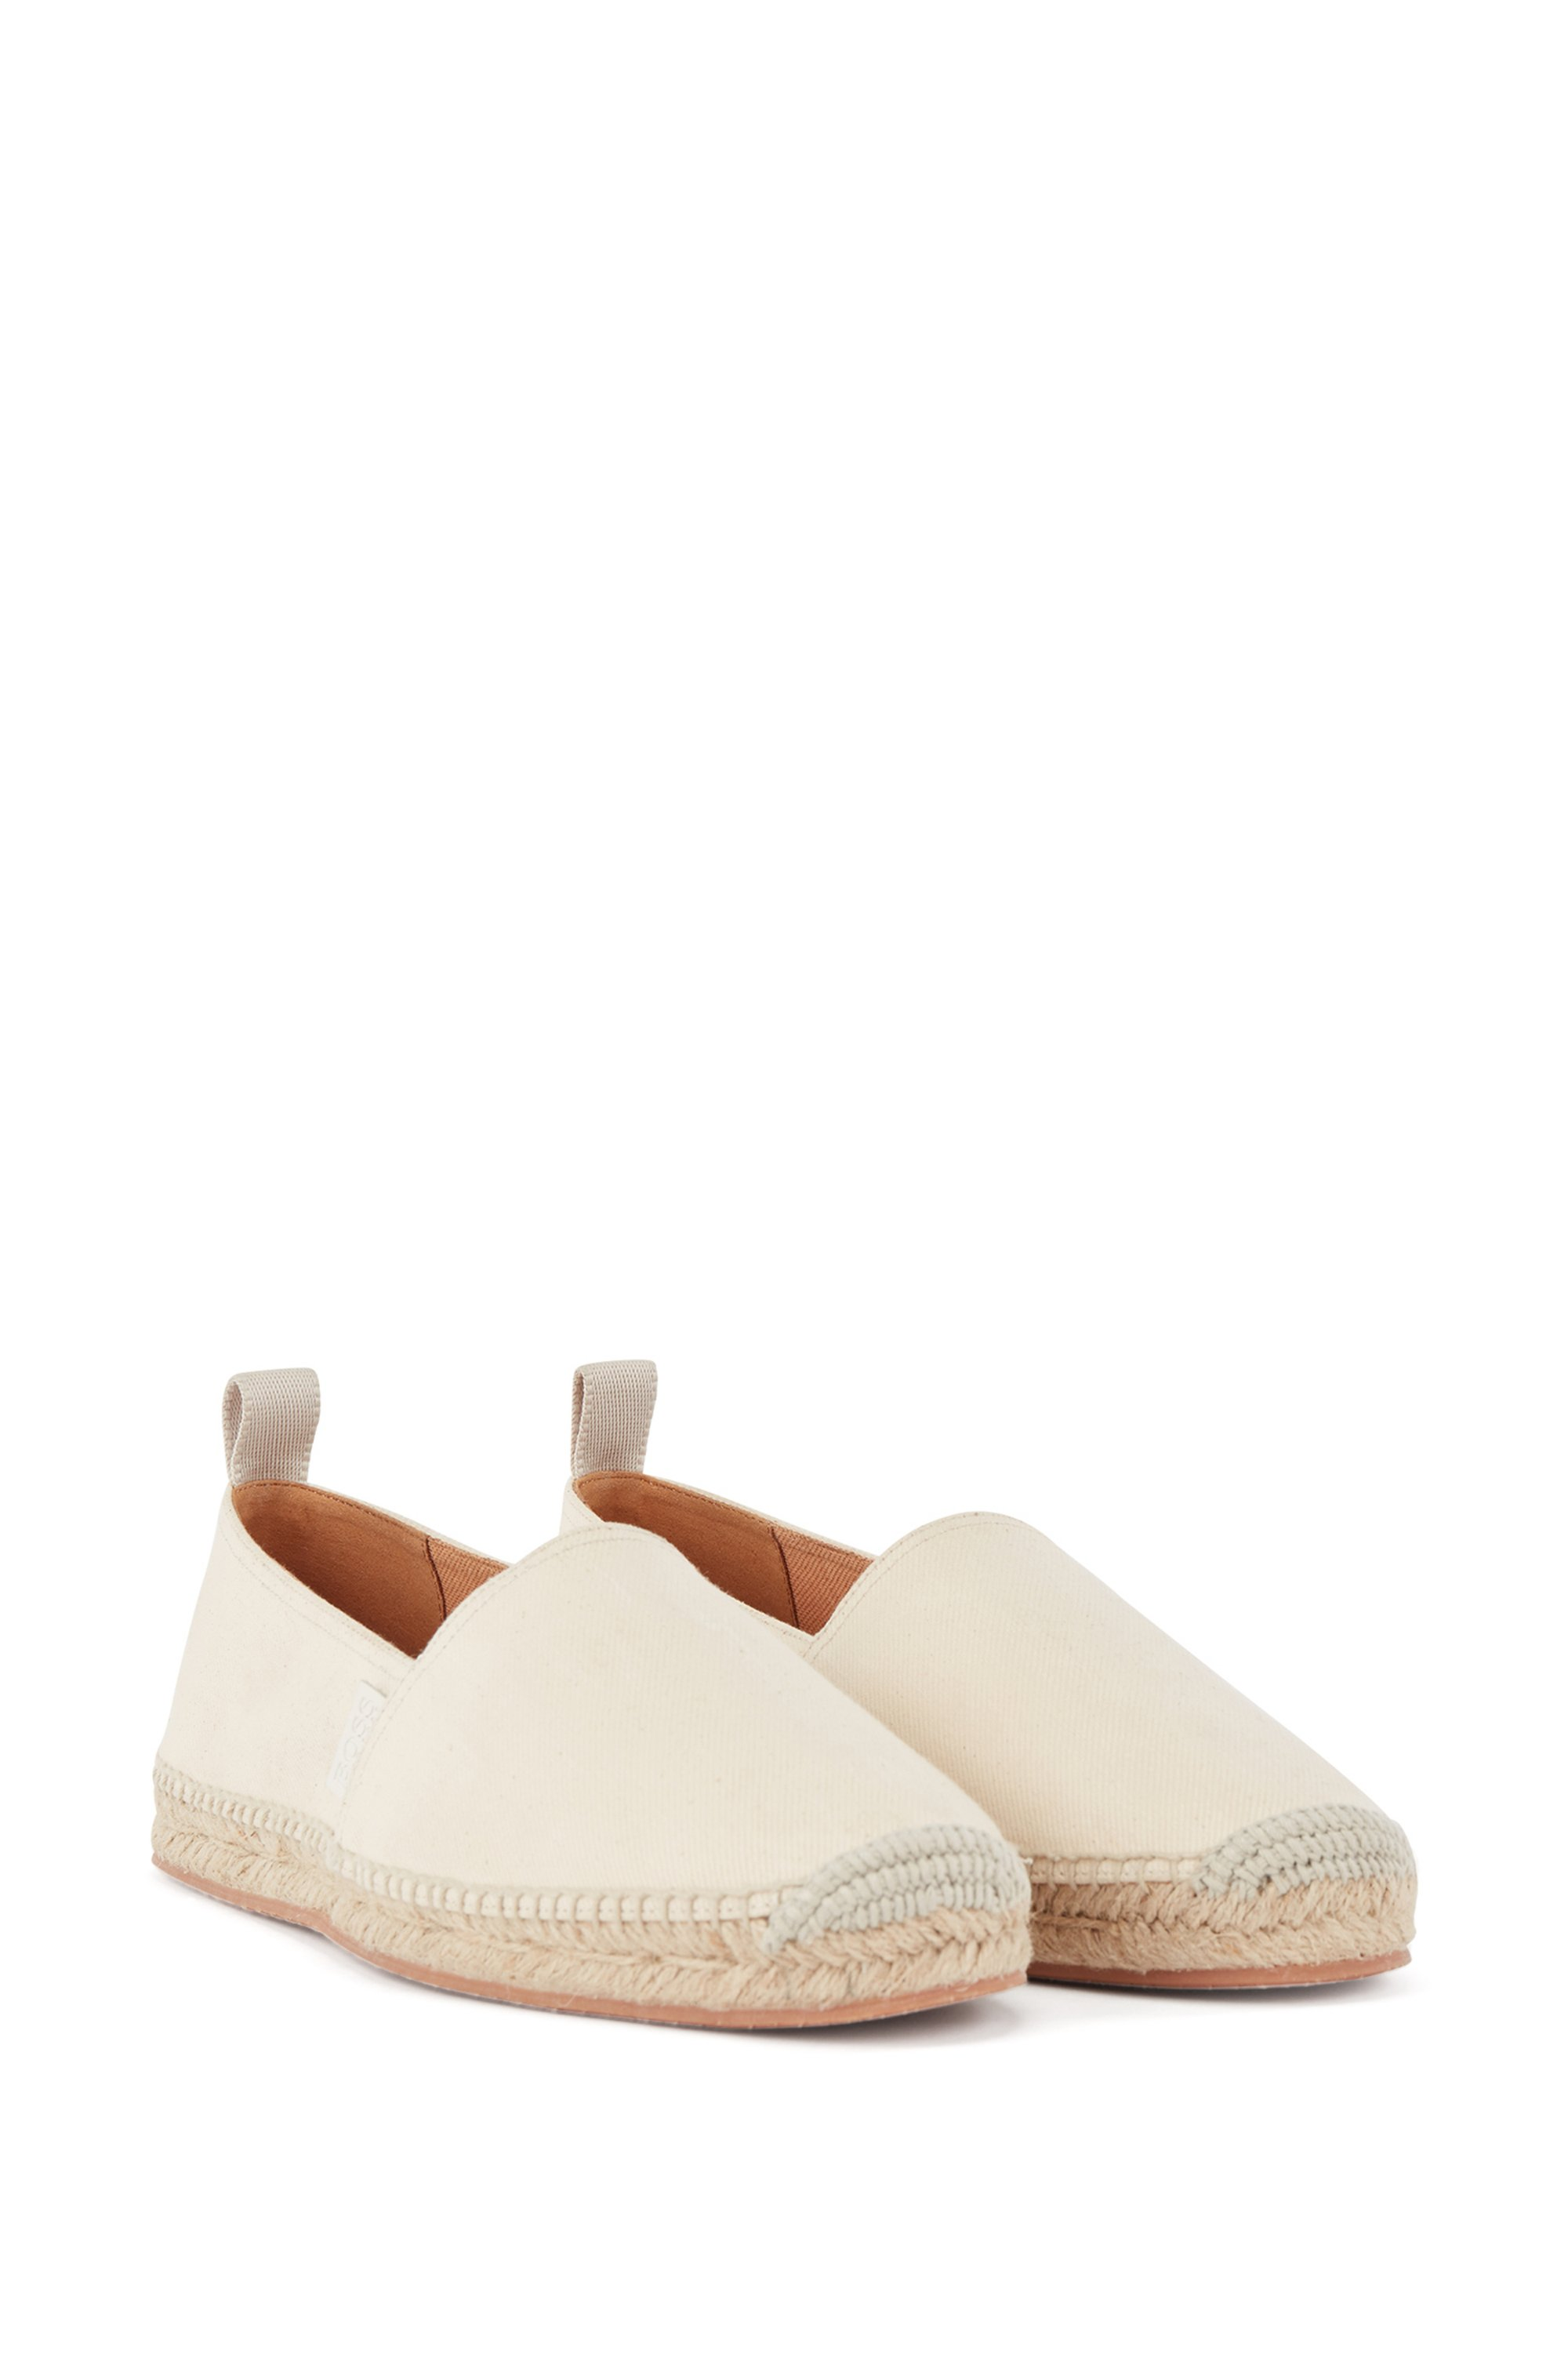 Jute-trimmed espadrilles in organic cotton with stretch